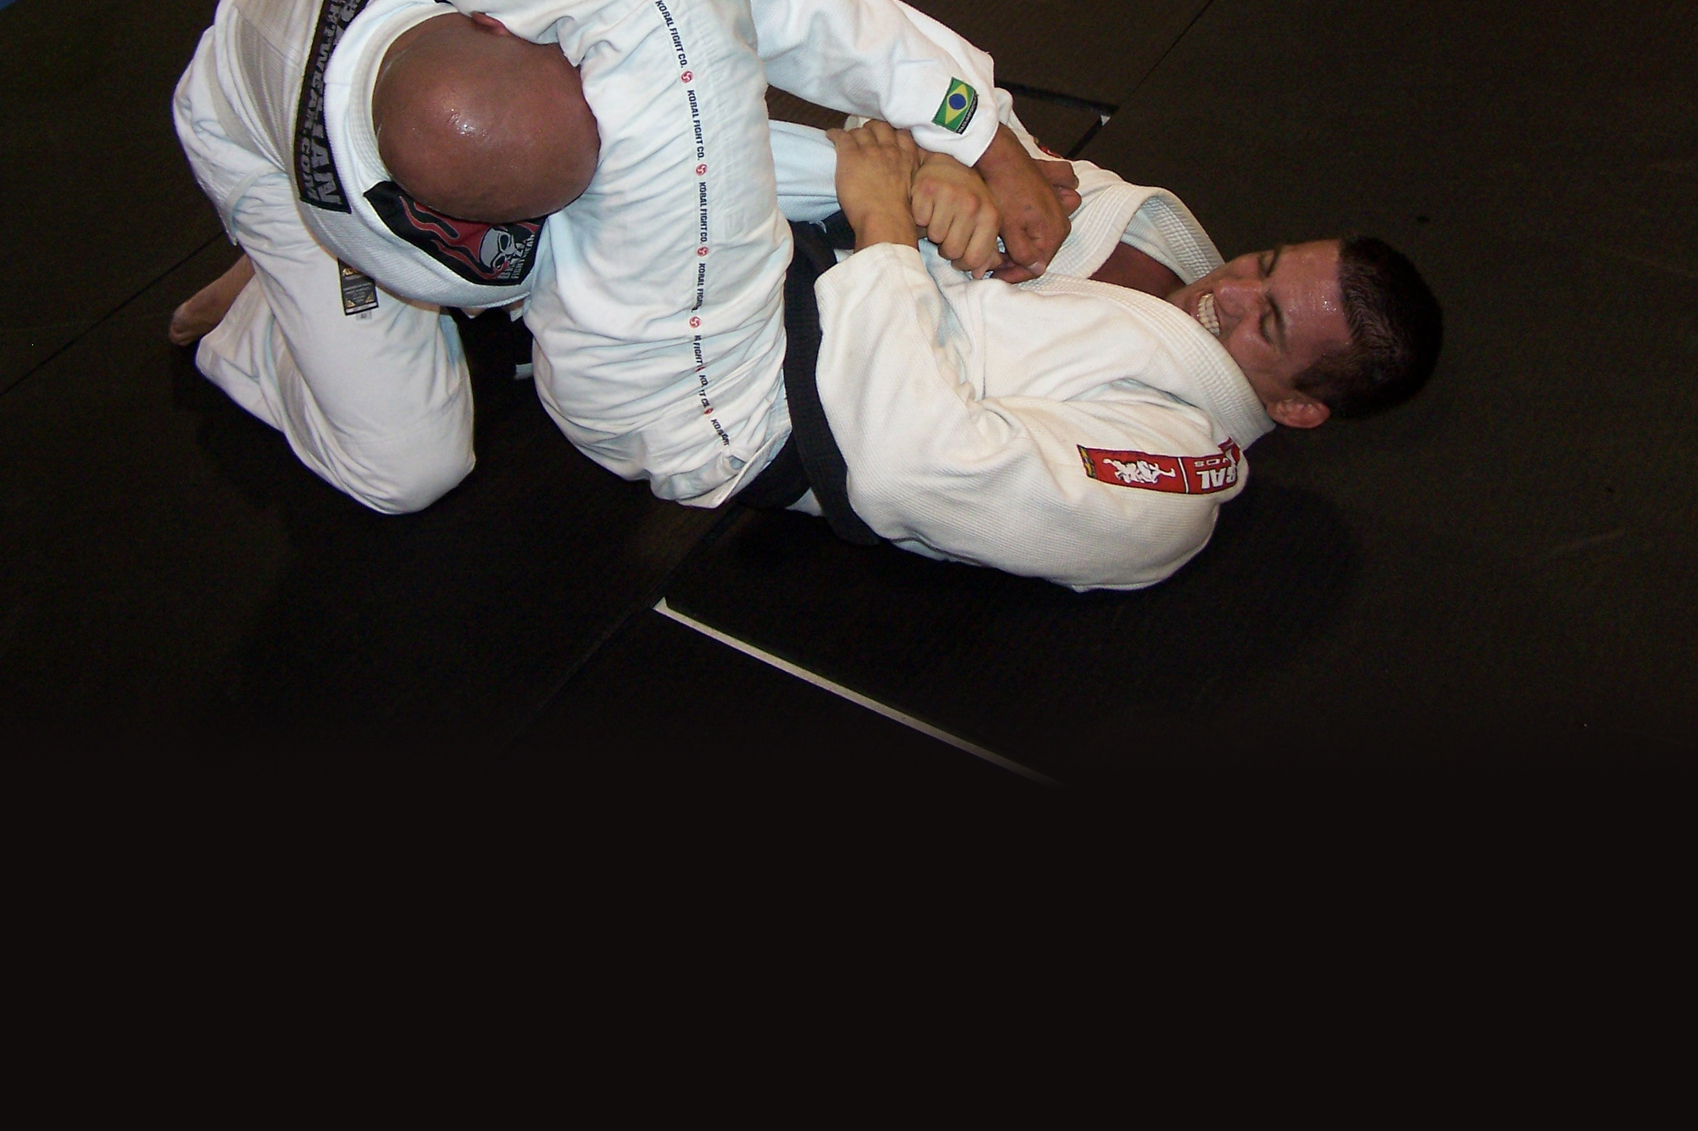 Brazilian Jiu Jitsu Classes in Dallas, TX